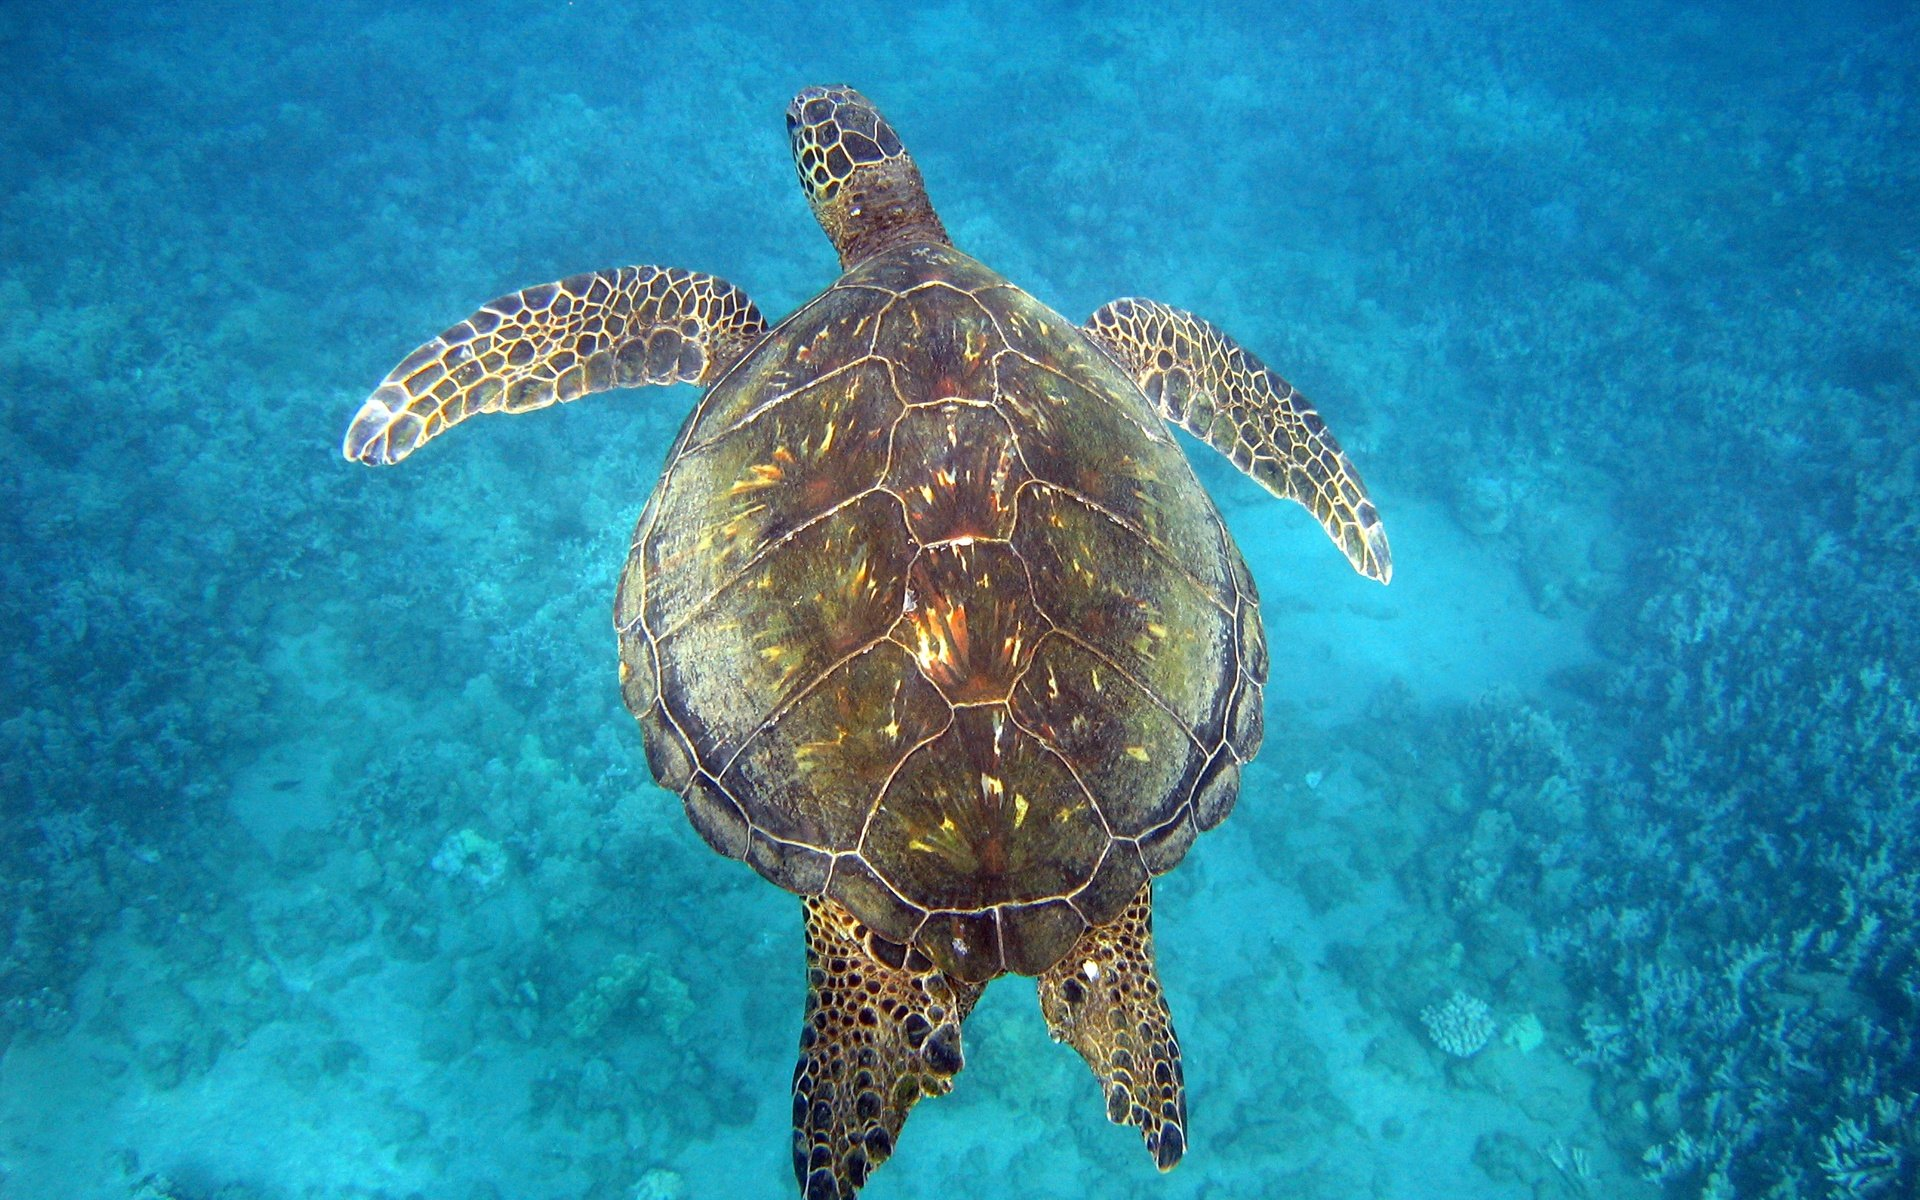 sea turtles Sea turtle recovery, their efforts, and how to donate to the sea turtles' care can  be found by visiting seaturtlerecoveryorg to contact sea turtle recovery at the .